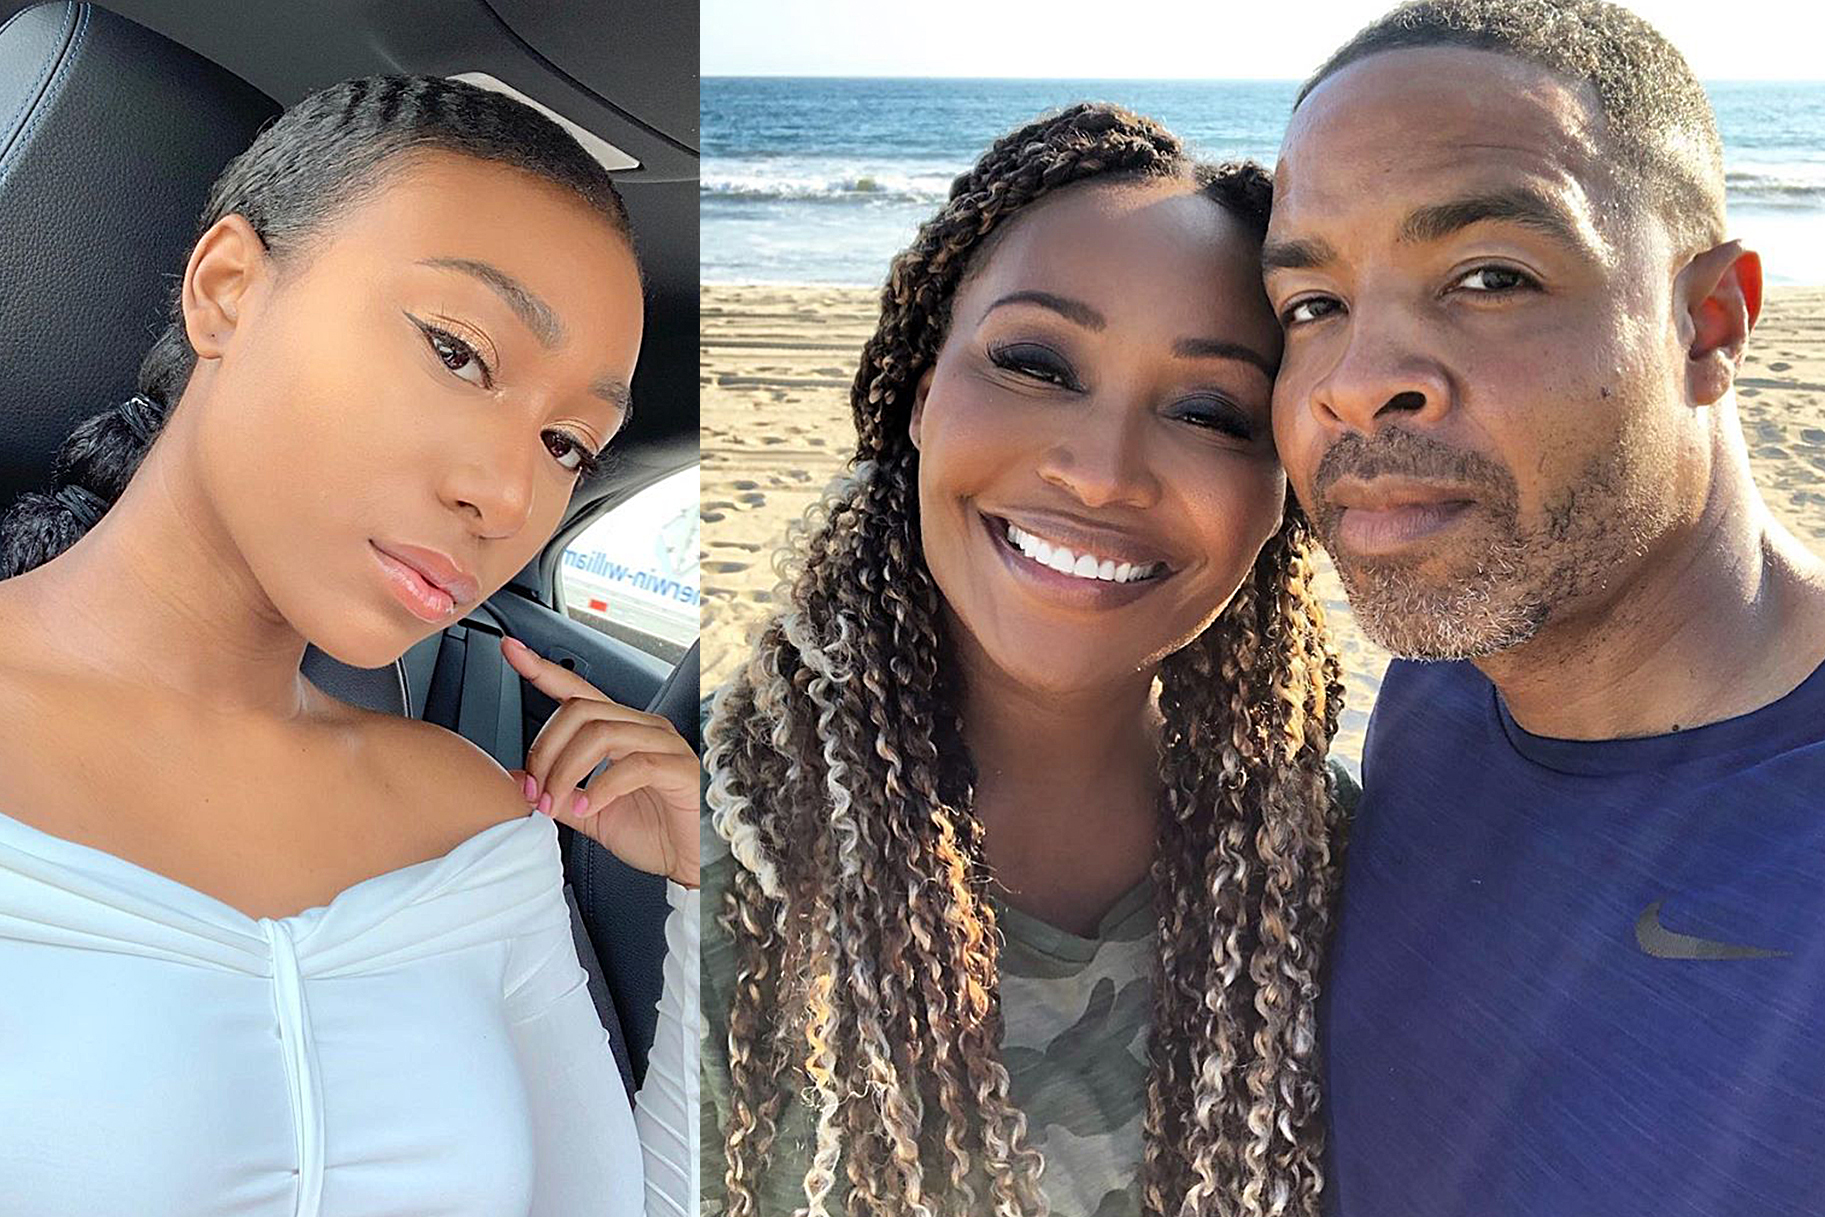 Cynthia Bailey And Her Daughter, Noelle Robinson, Prank Mike Hill - Check Out The 'Arguing With My Mom' Prank That Will Make Your Day!